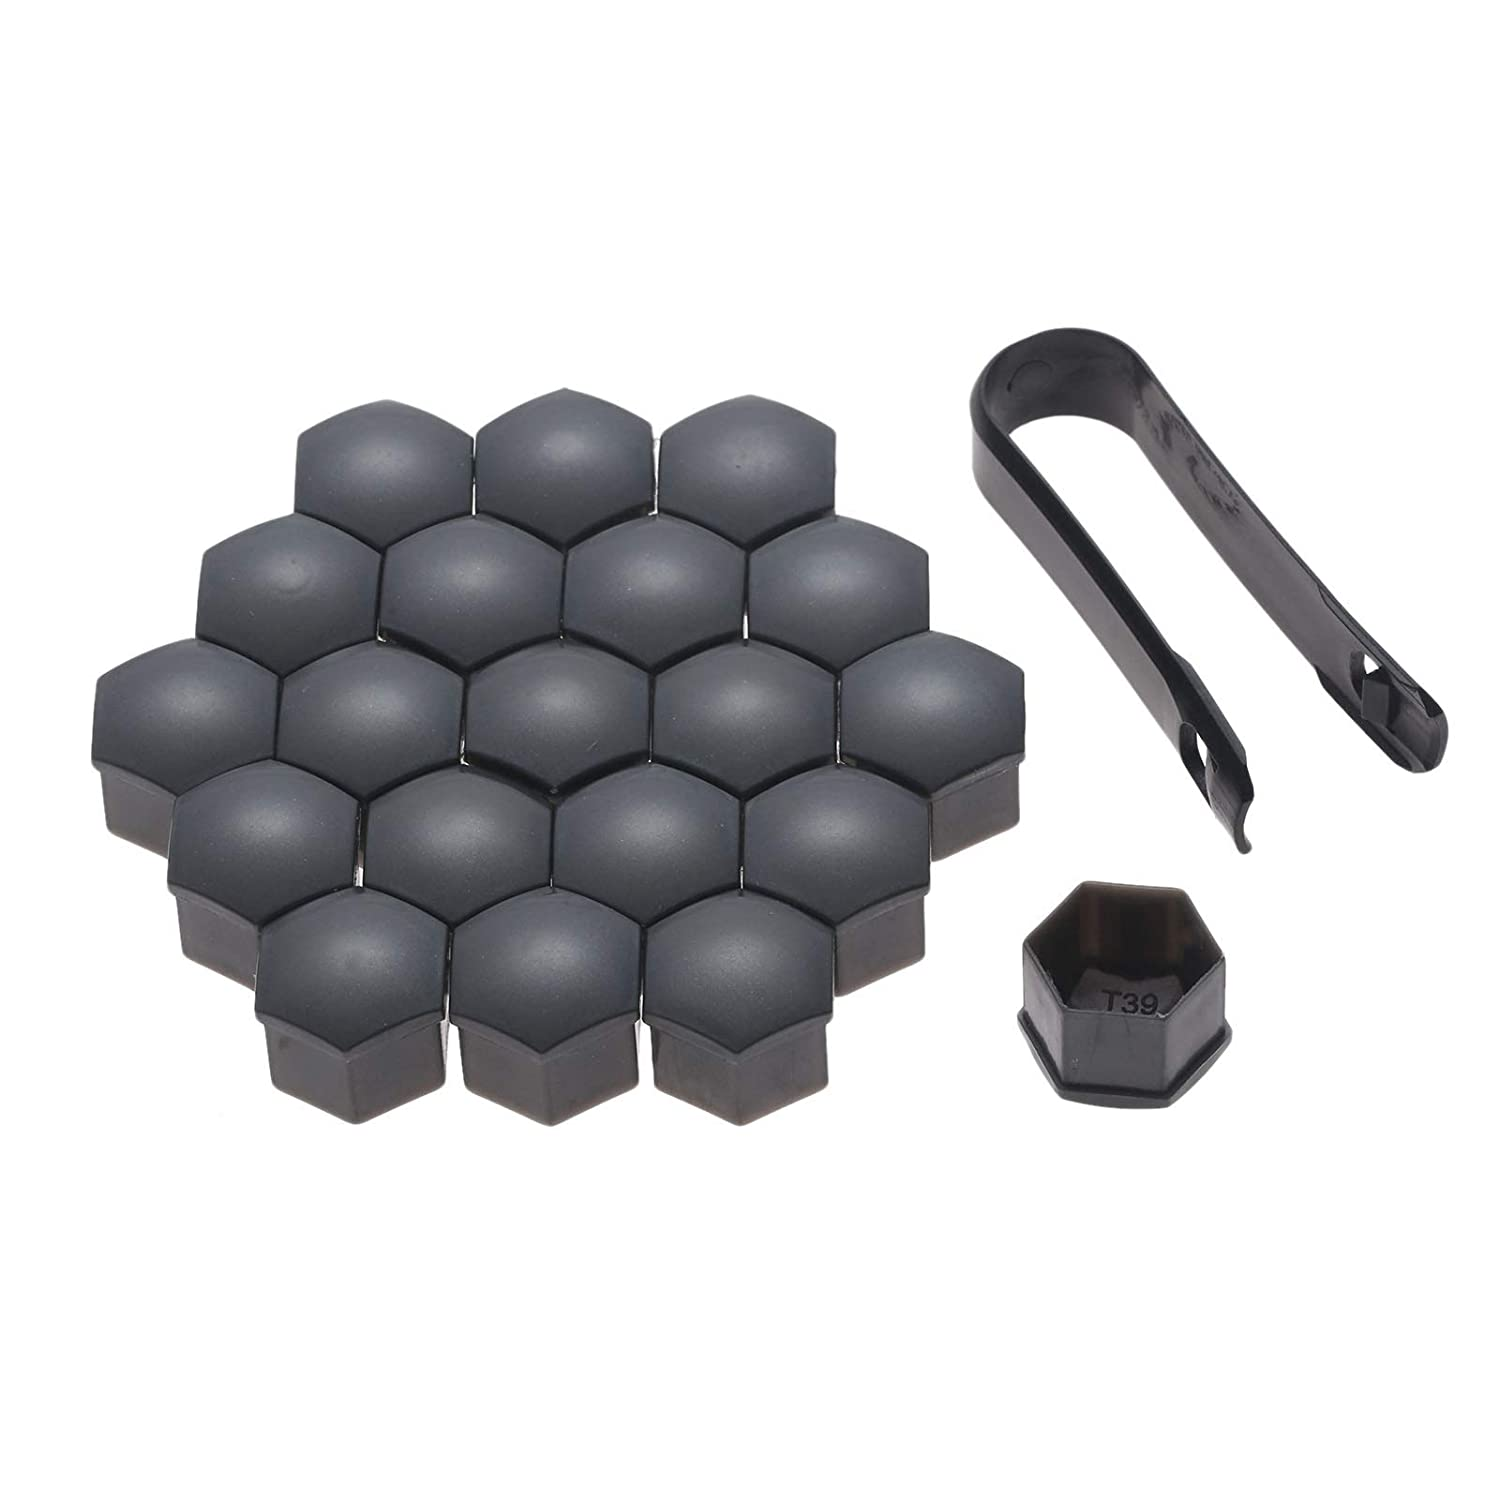 Remover Tool Mtsooning 20Pcs Black Car Styling Wheel Nut Protection Auto Hub Screw Bolt Head Cover Tire Protector 21mm Plastic